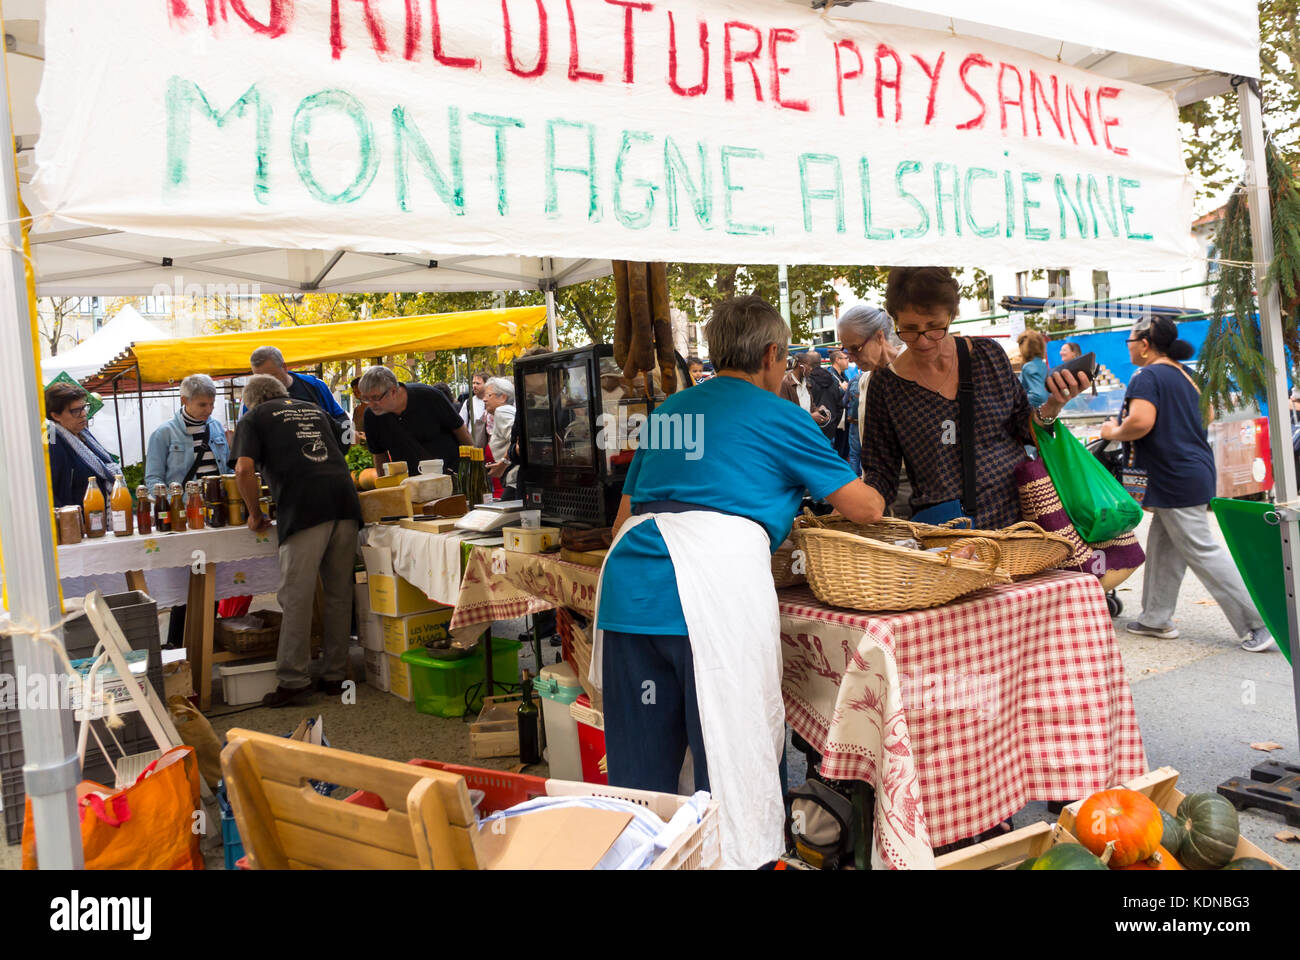 Montreuil, France, Local Products, French Farmer's Organic Food Market on Public Square in Paris Suburbs - Stock Image